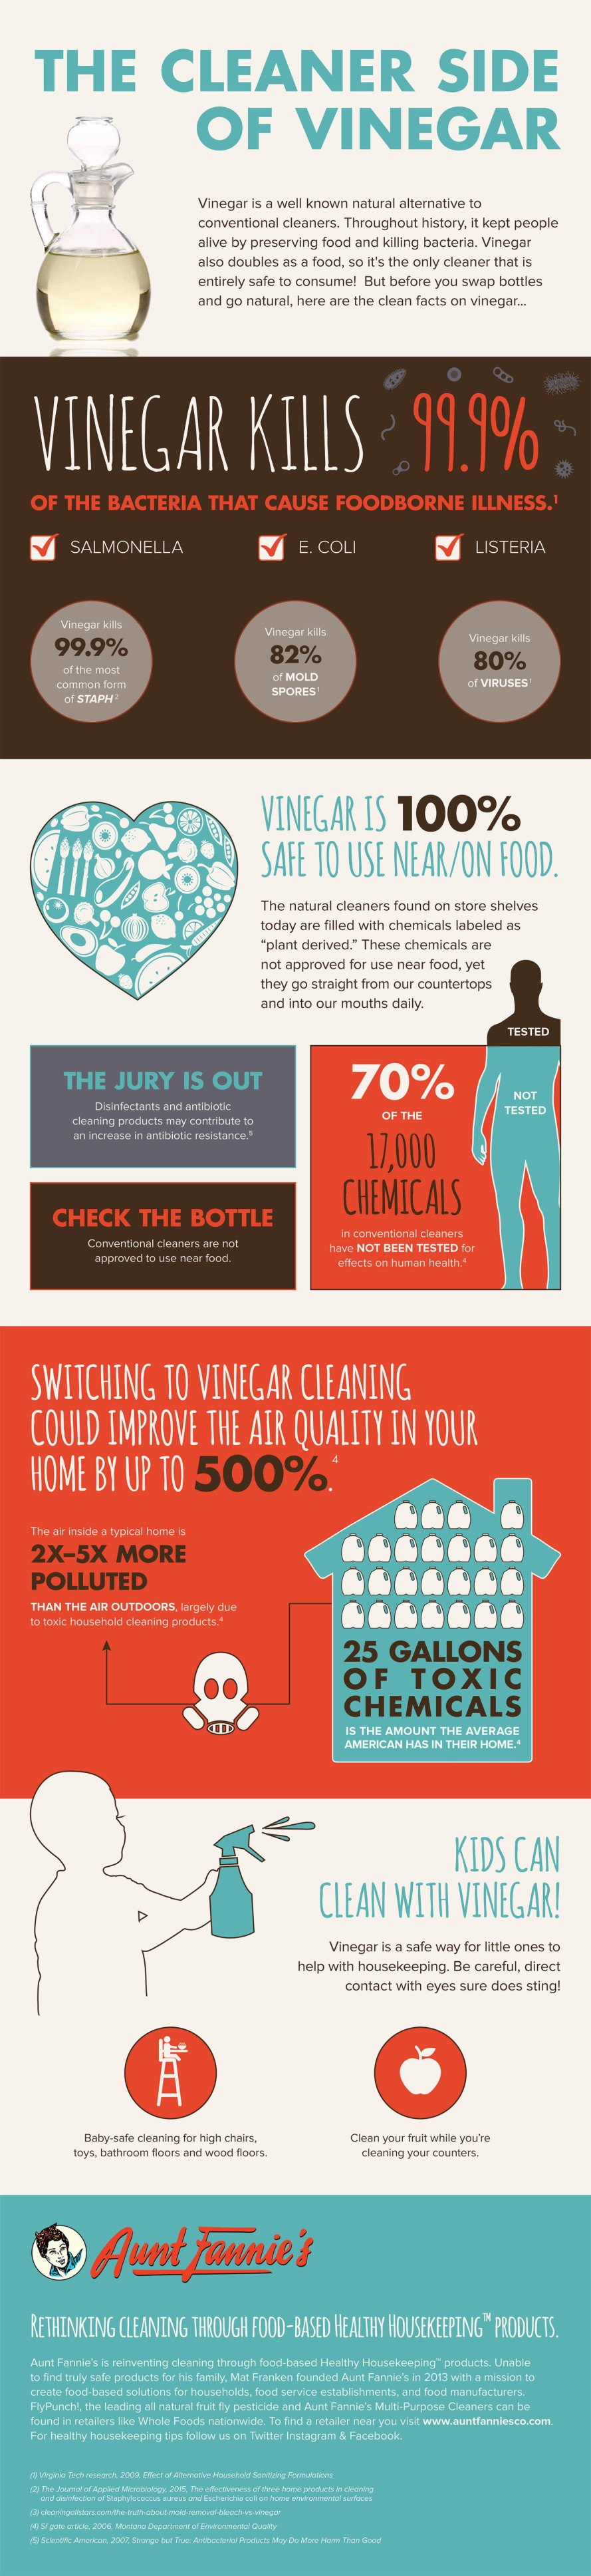 infographic, vinegar, cleaning with vinegar, vinegar bacteria, how to clean with vinegar, is vinegar safe, is vinegar sanitary, natural cleaning